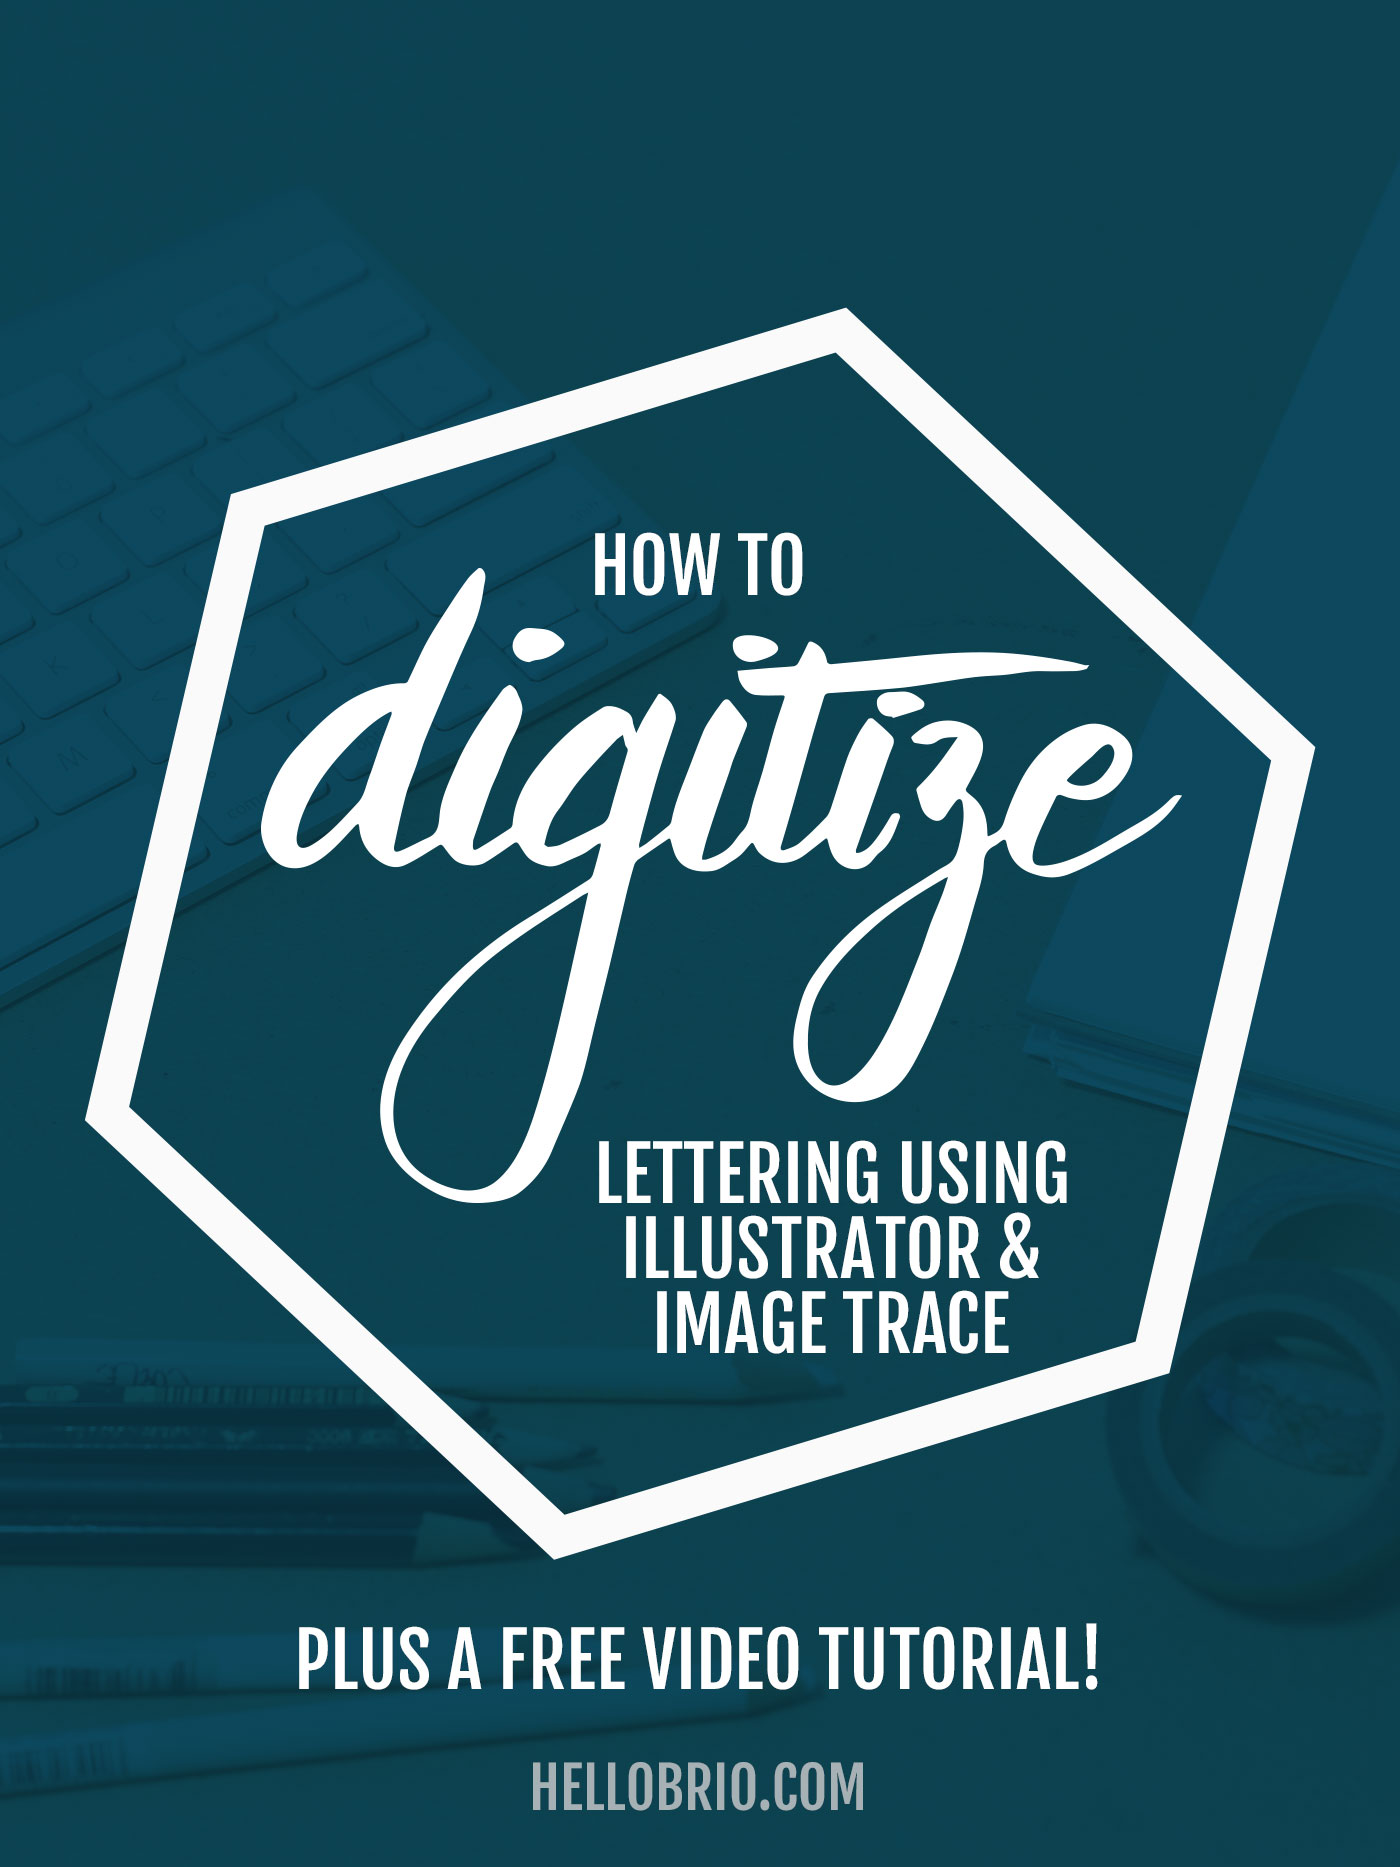 How to digitize lettering using Illustrator's Image Trace